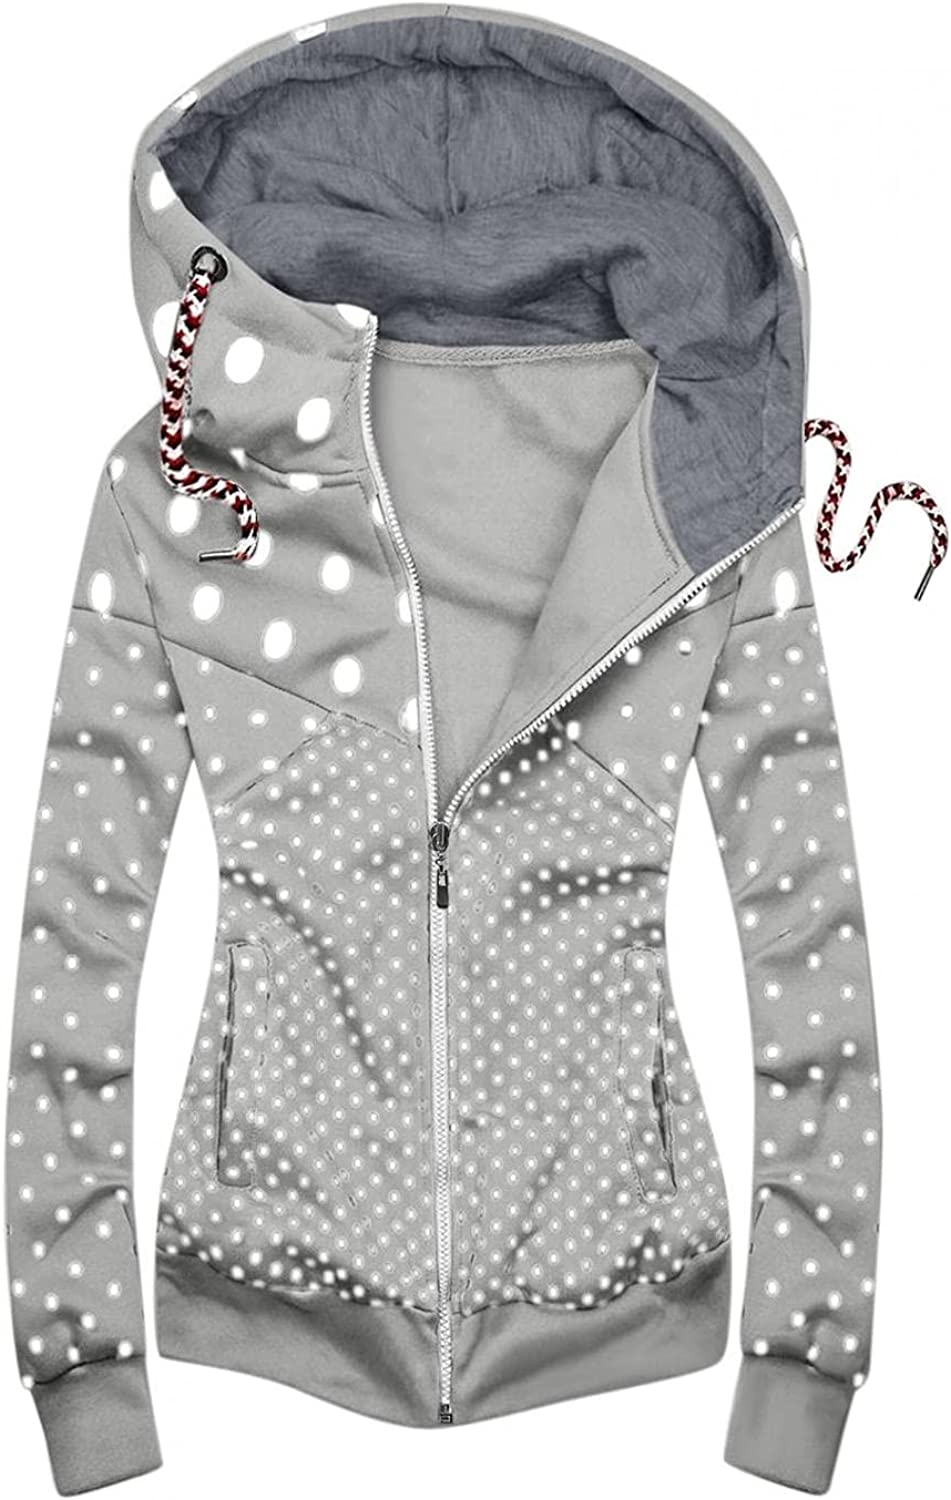 TOWMUS Womens Jacket Direct store Coats Lightweight Drawstring Sweats Al sold out. Pockets